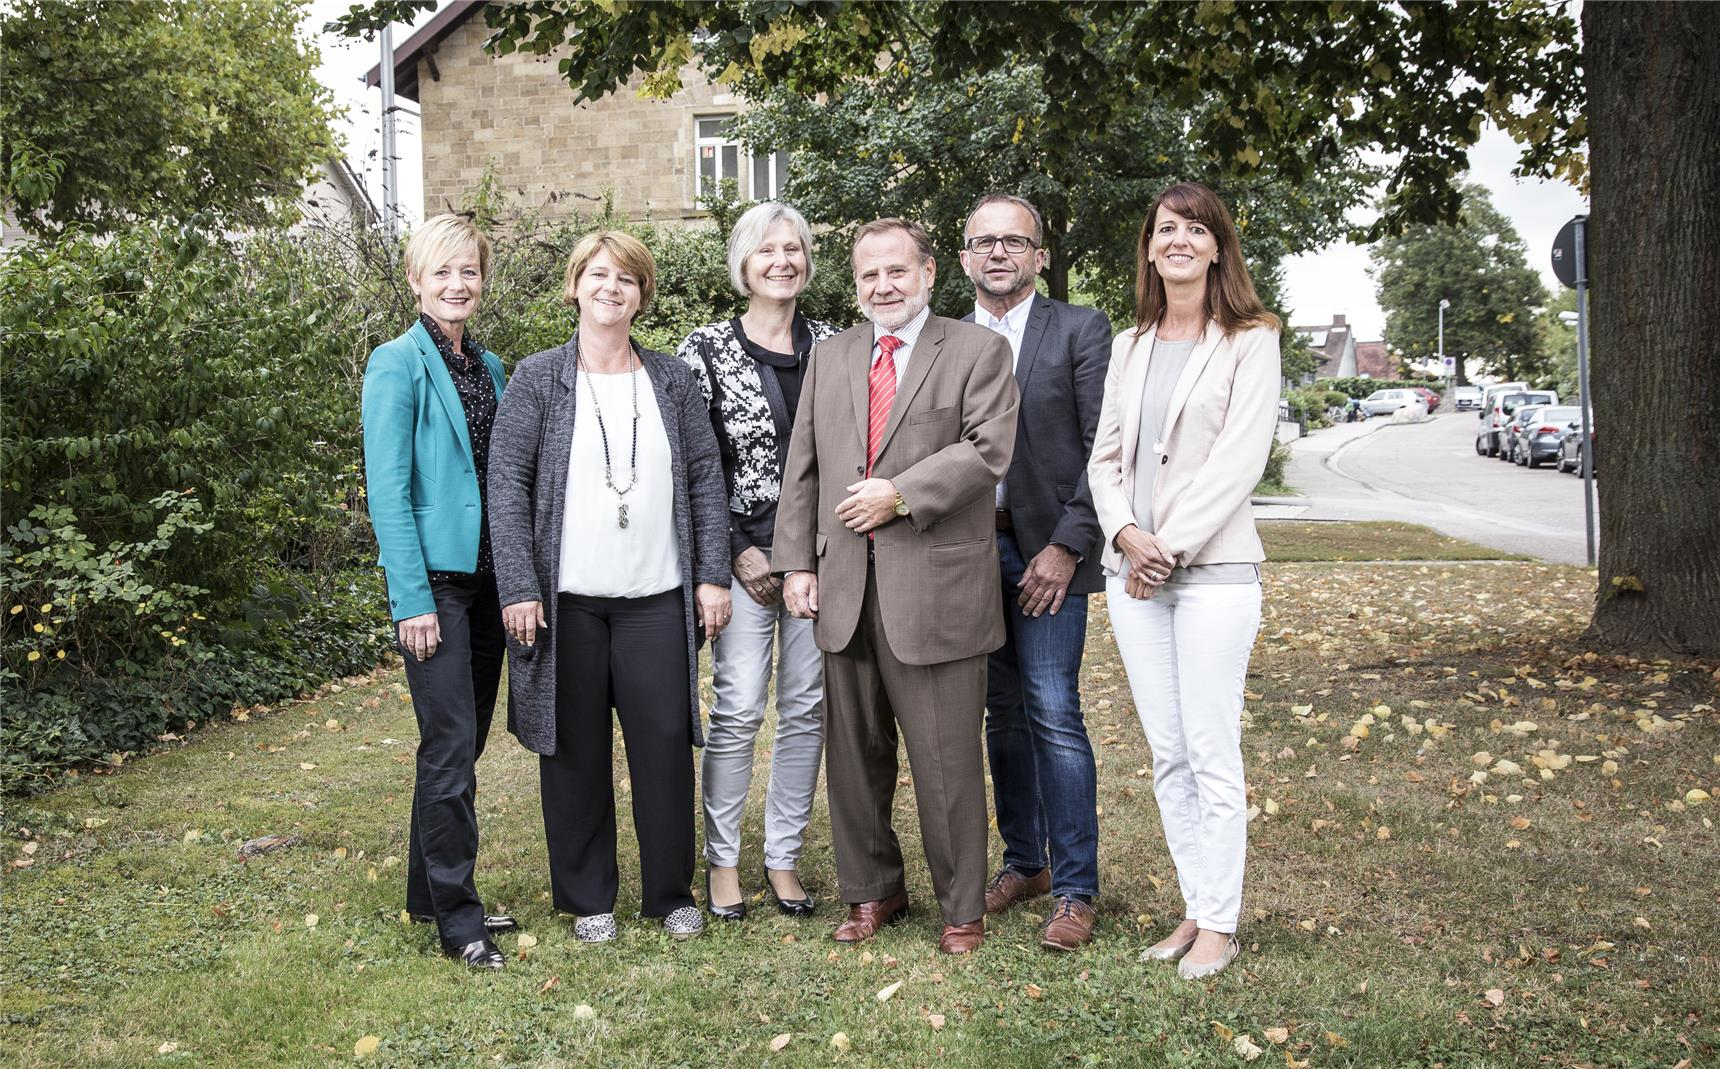 Leitungsteam des Caritasverbandes Bruchsal